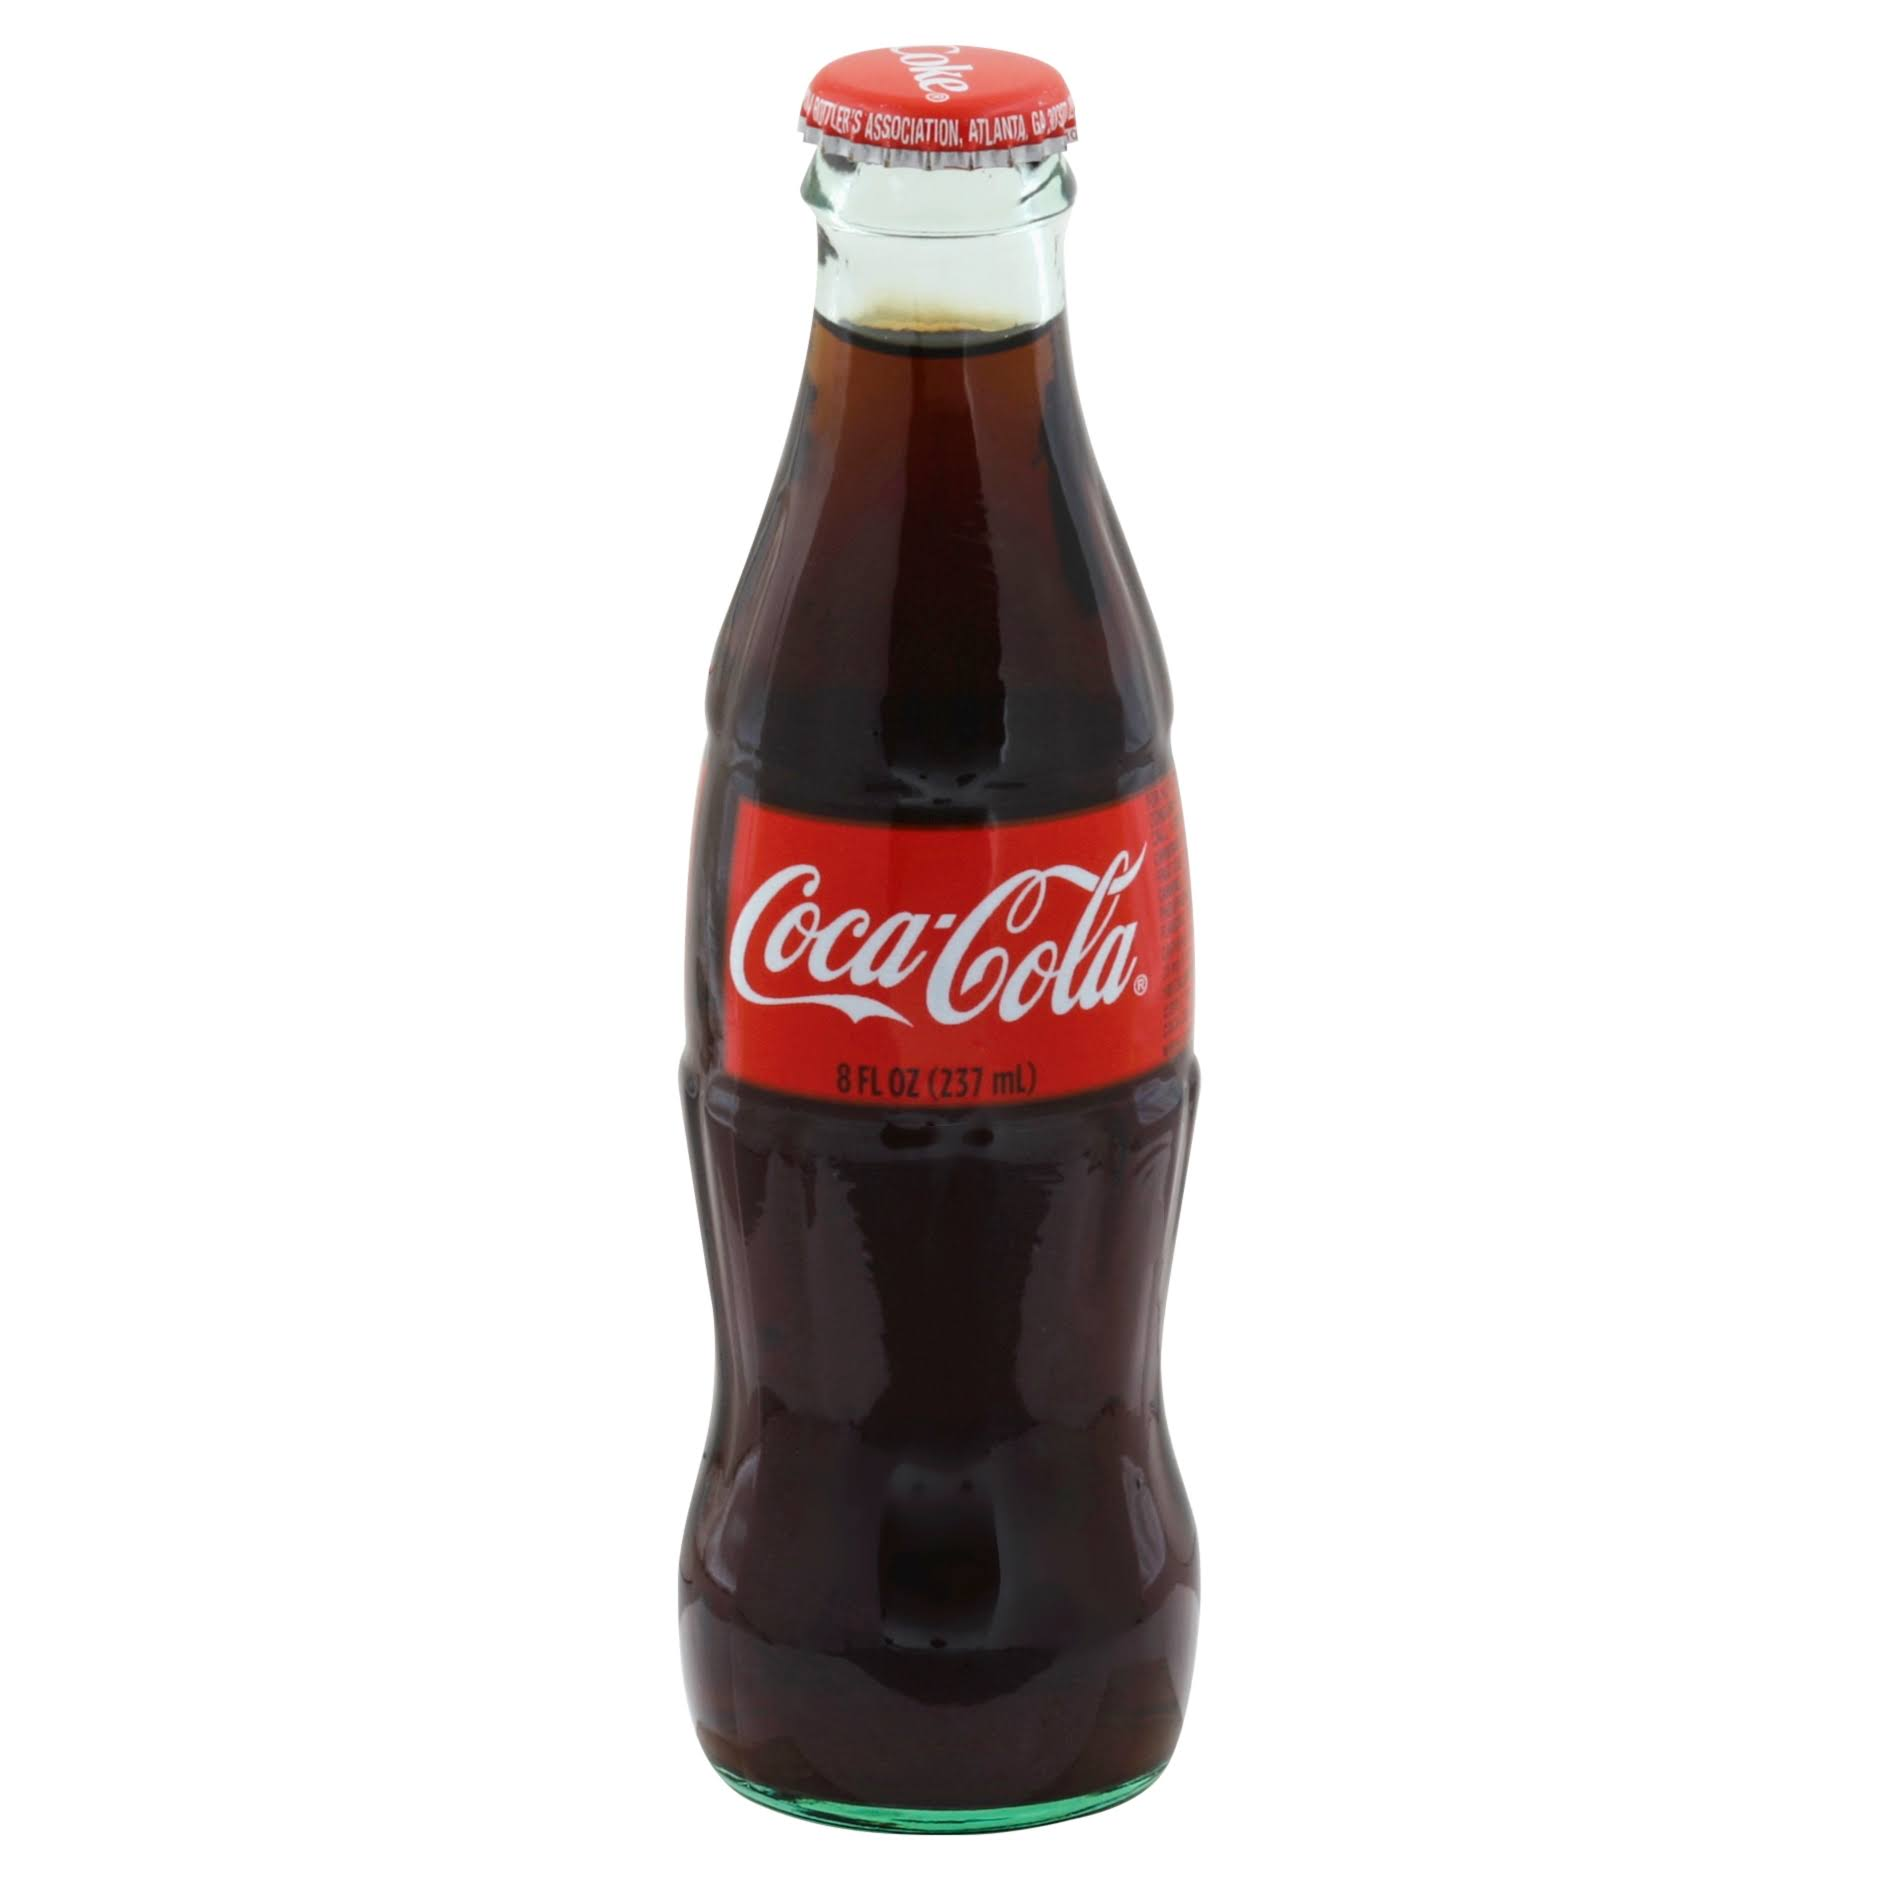 Coca Cola Soda - 8 fl oz